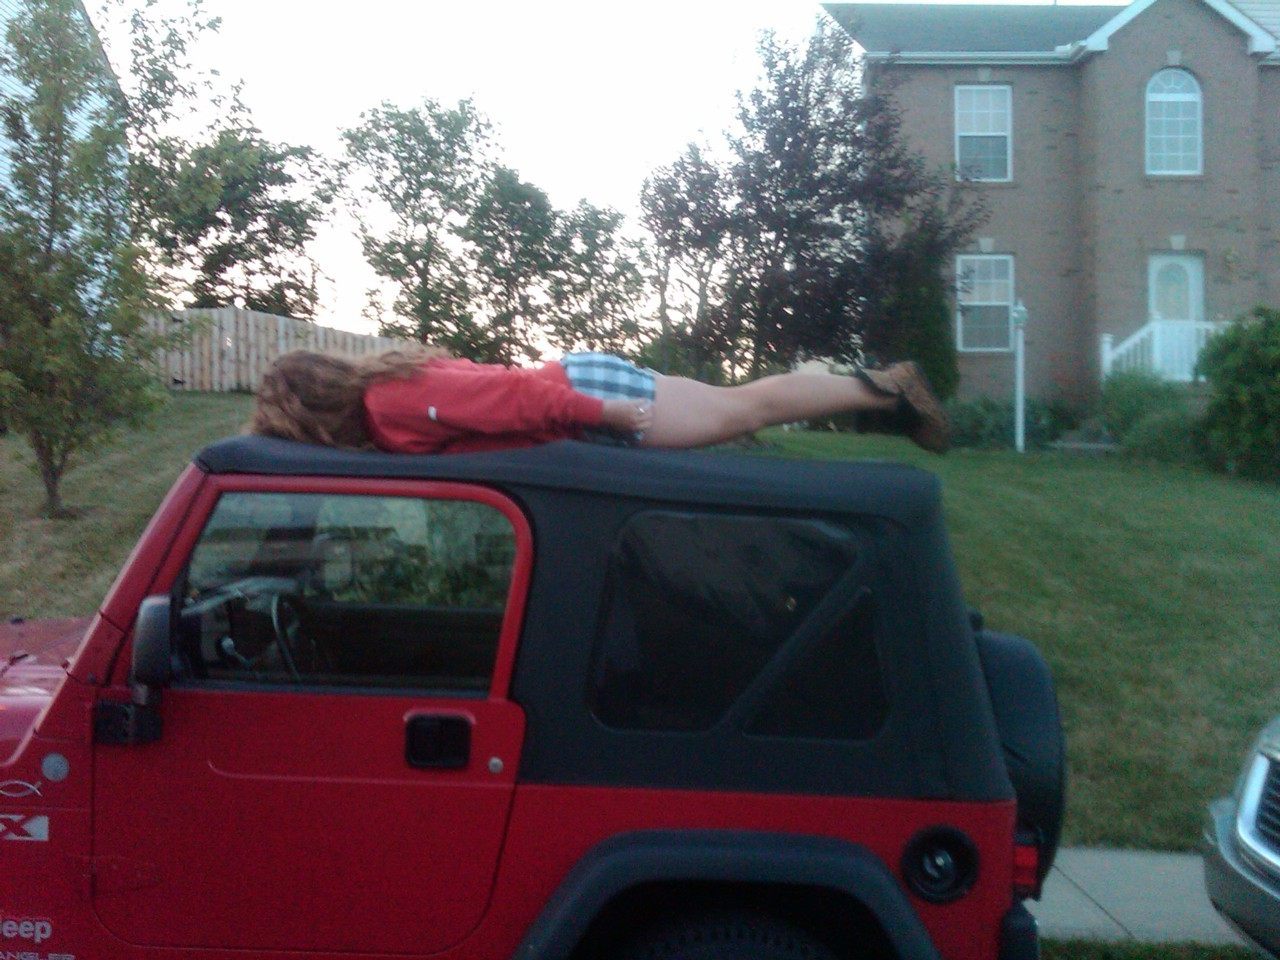 Corinne doing the Jeep plank